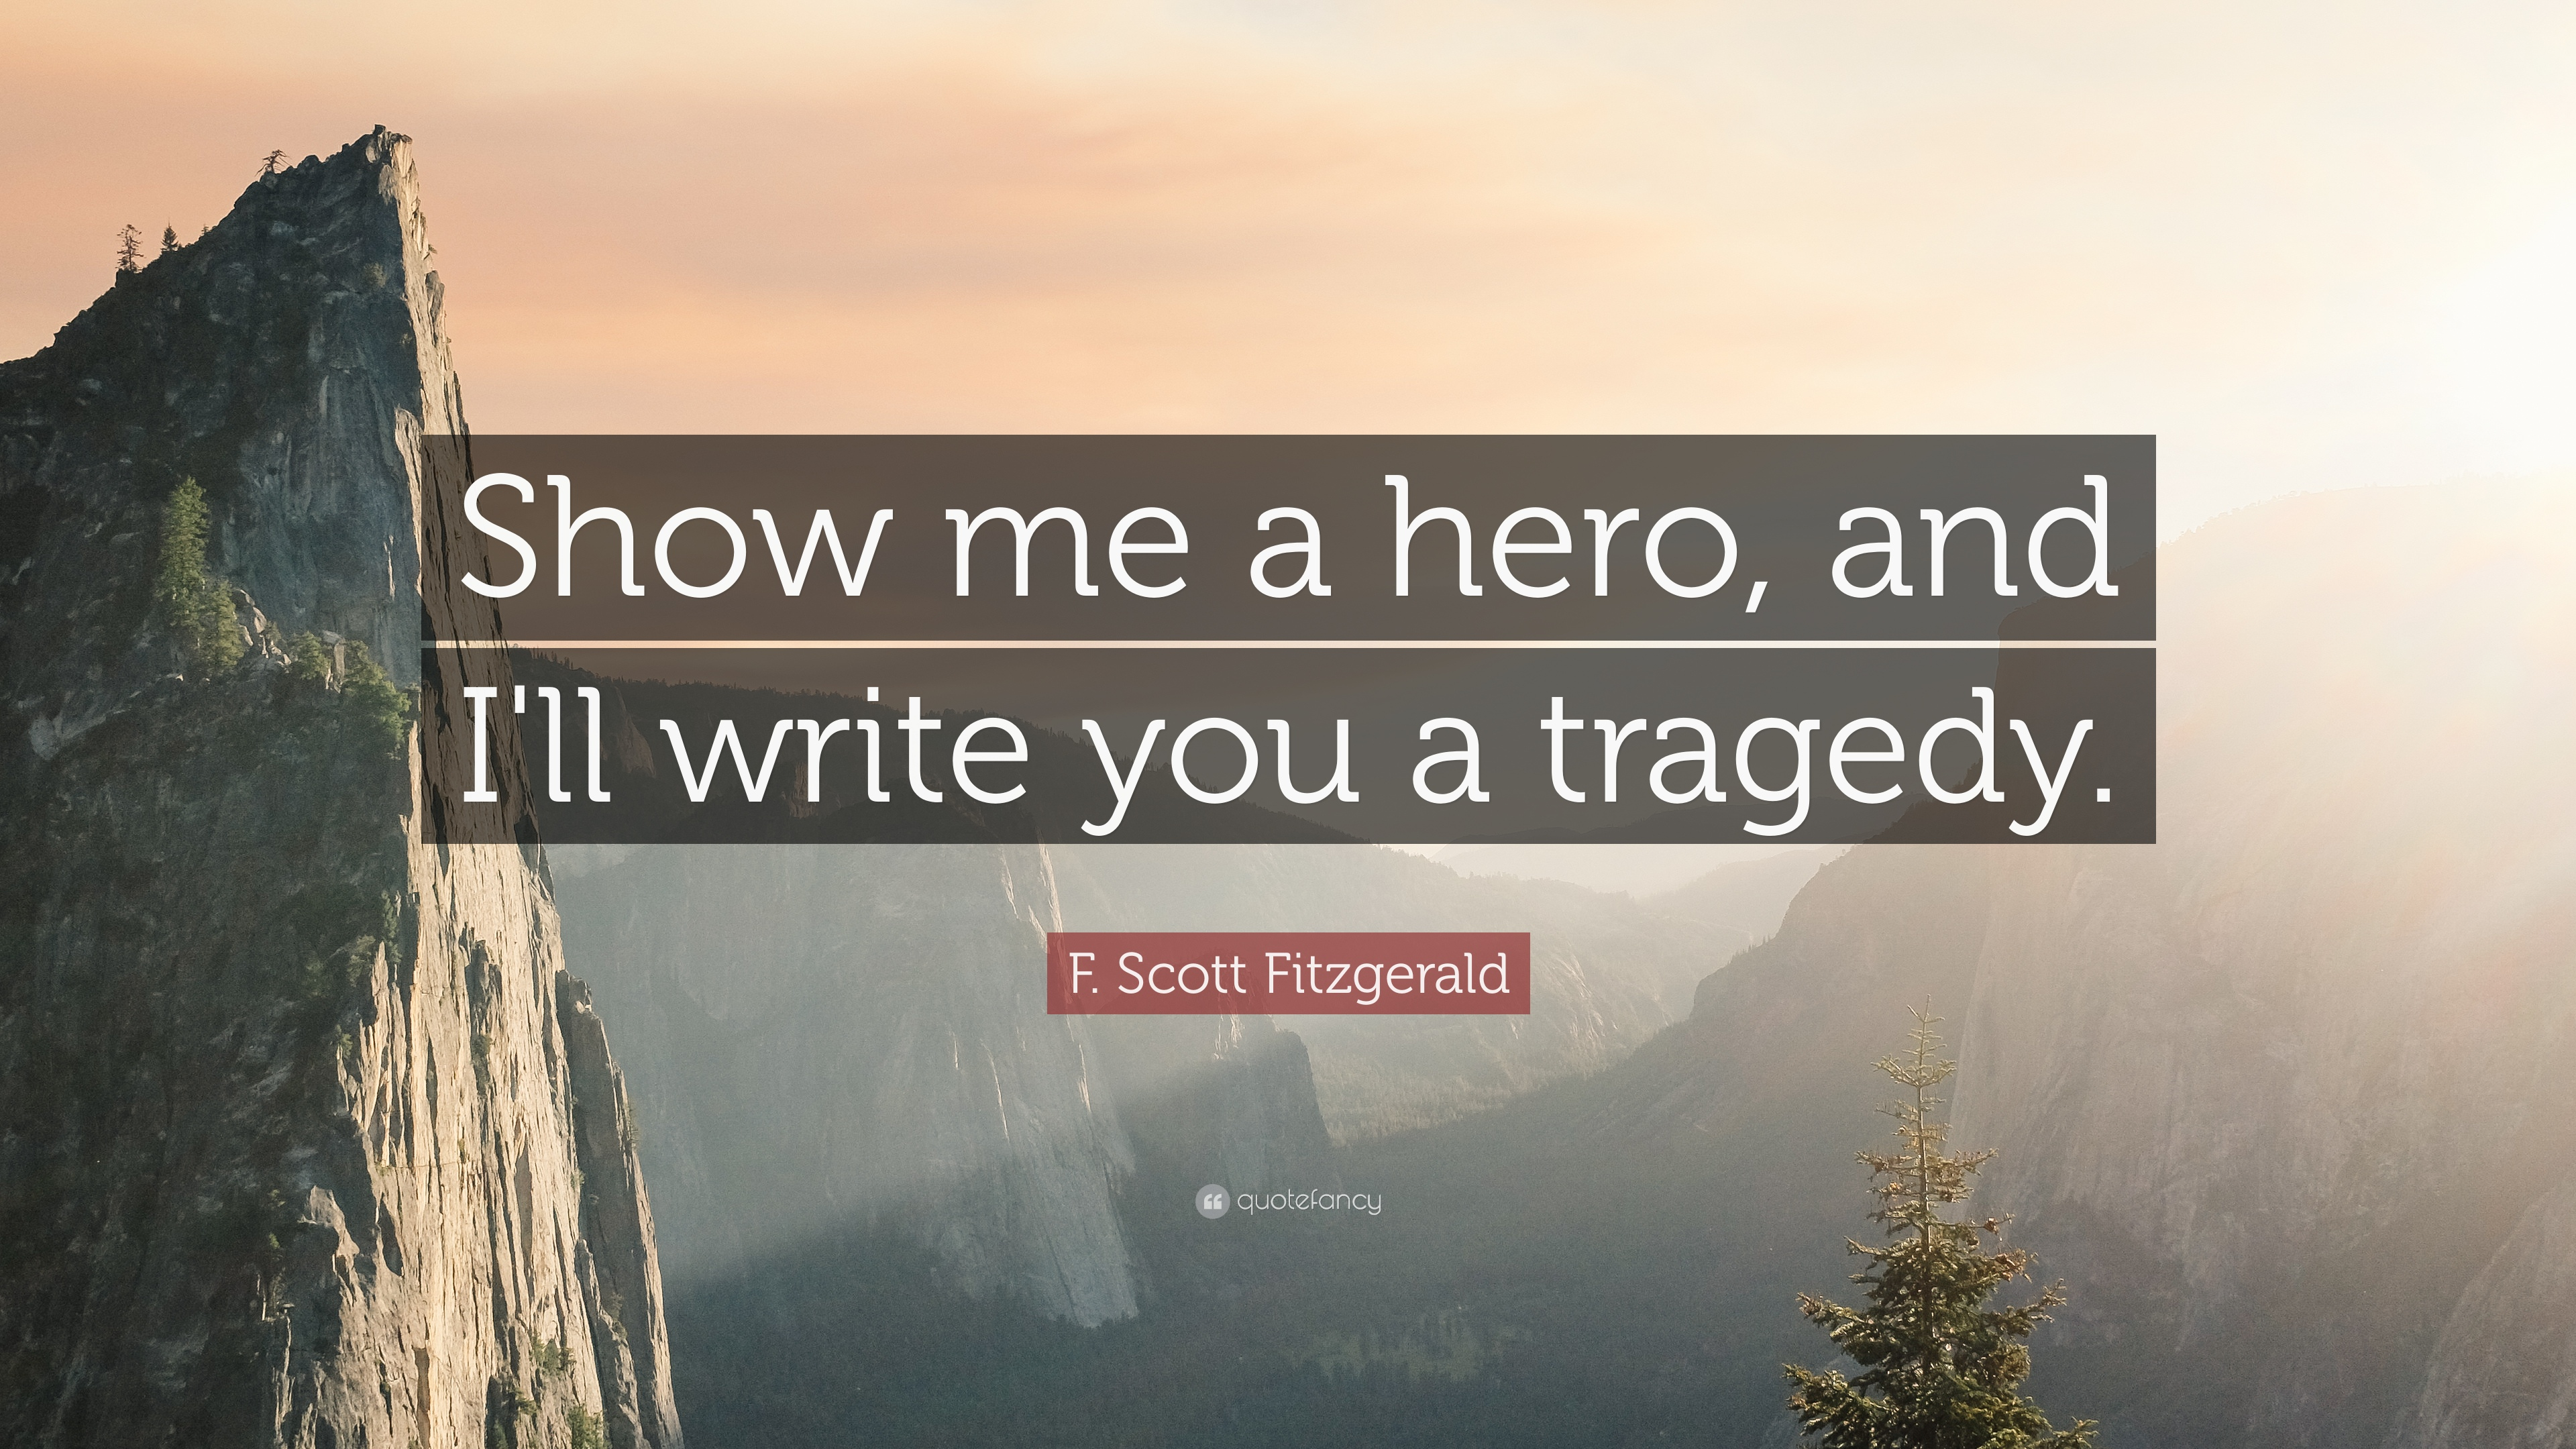 F Scott Fitzgerald Quote Show Me A Hero And Ill Write You A